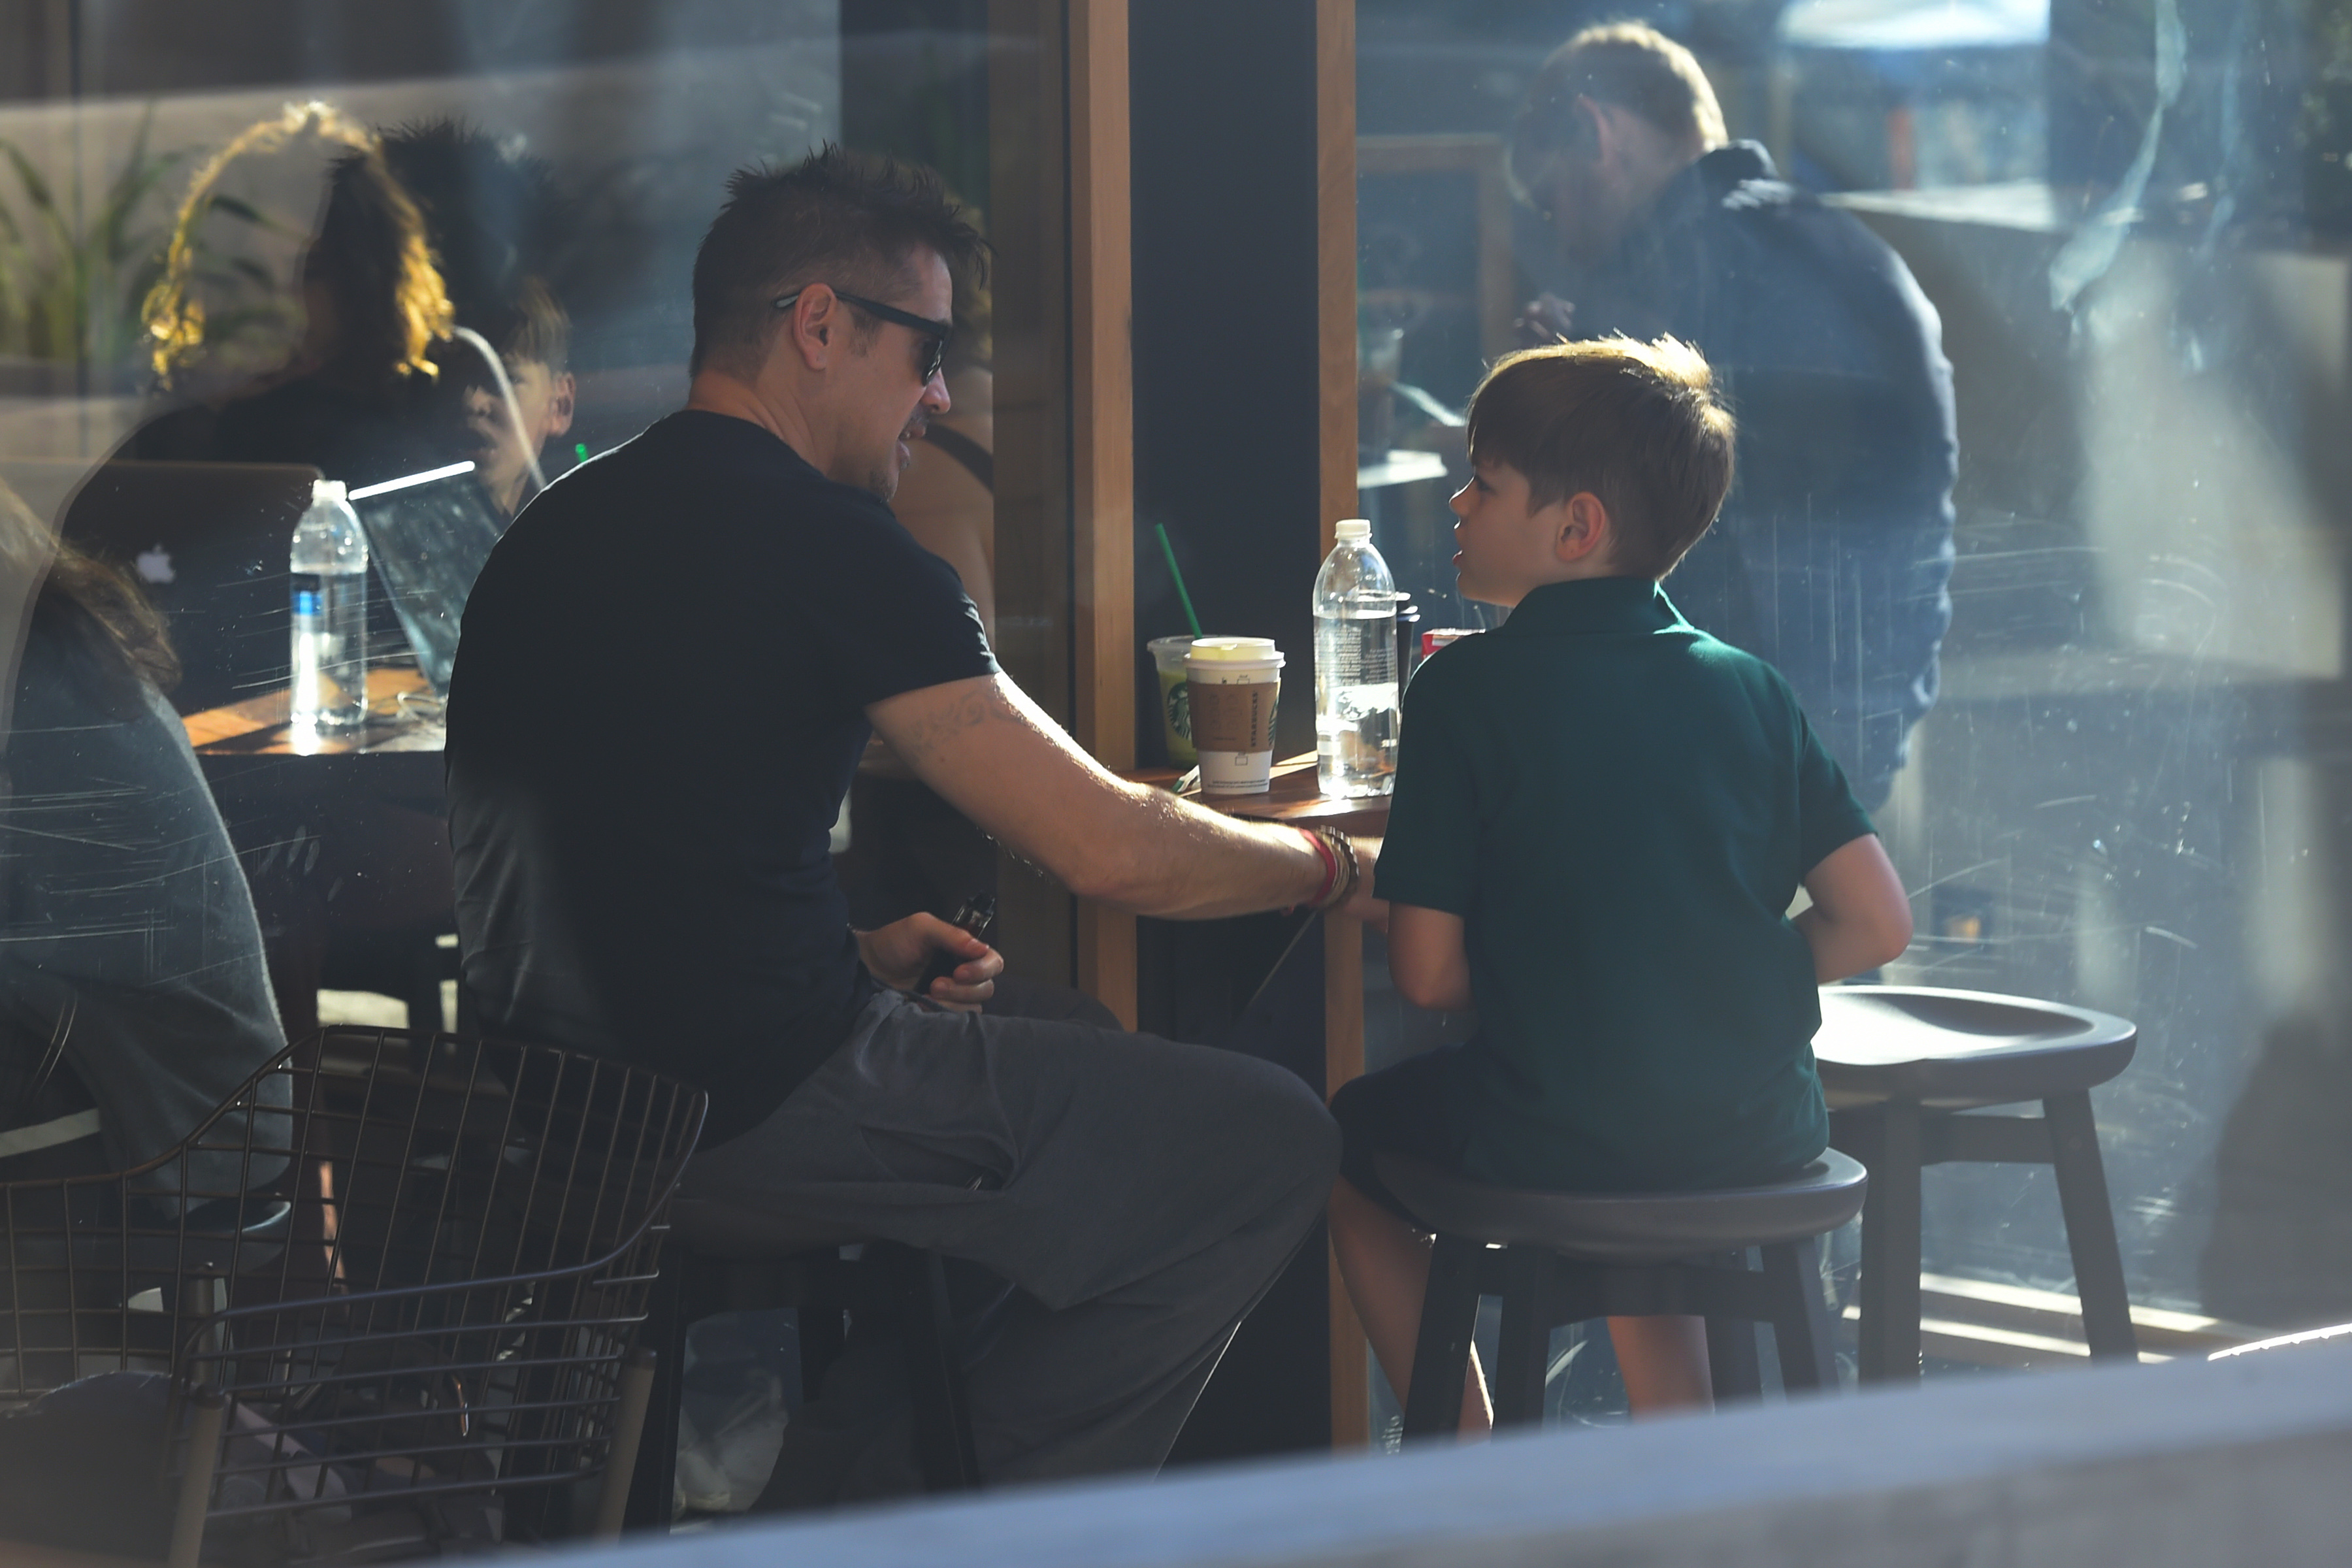 Colin Farrell visits a Starbucks in Los Angeles with one of his two sons on Jan. 17, 2018.